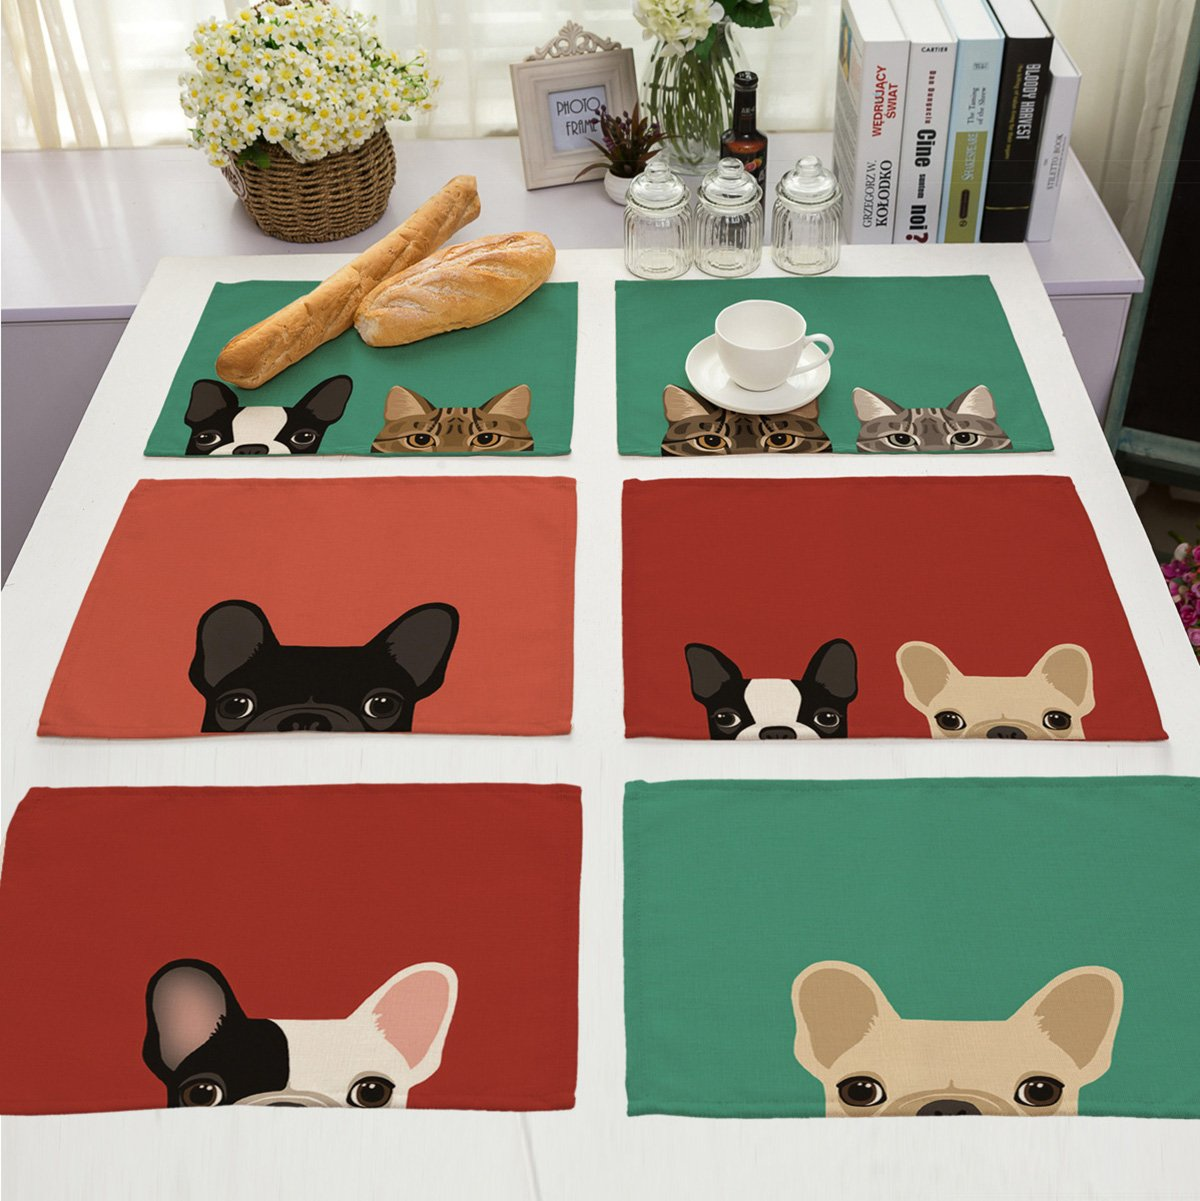 Dog/&Cat Pattern Table Mats Heat-resistant Non-slip Insulation Table Runner for Kitchen Dining Room Table Decoration Monoshop 6 In Set Cotton Linen Placemats